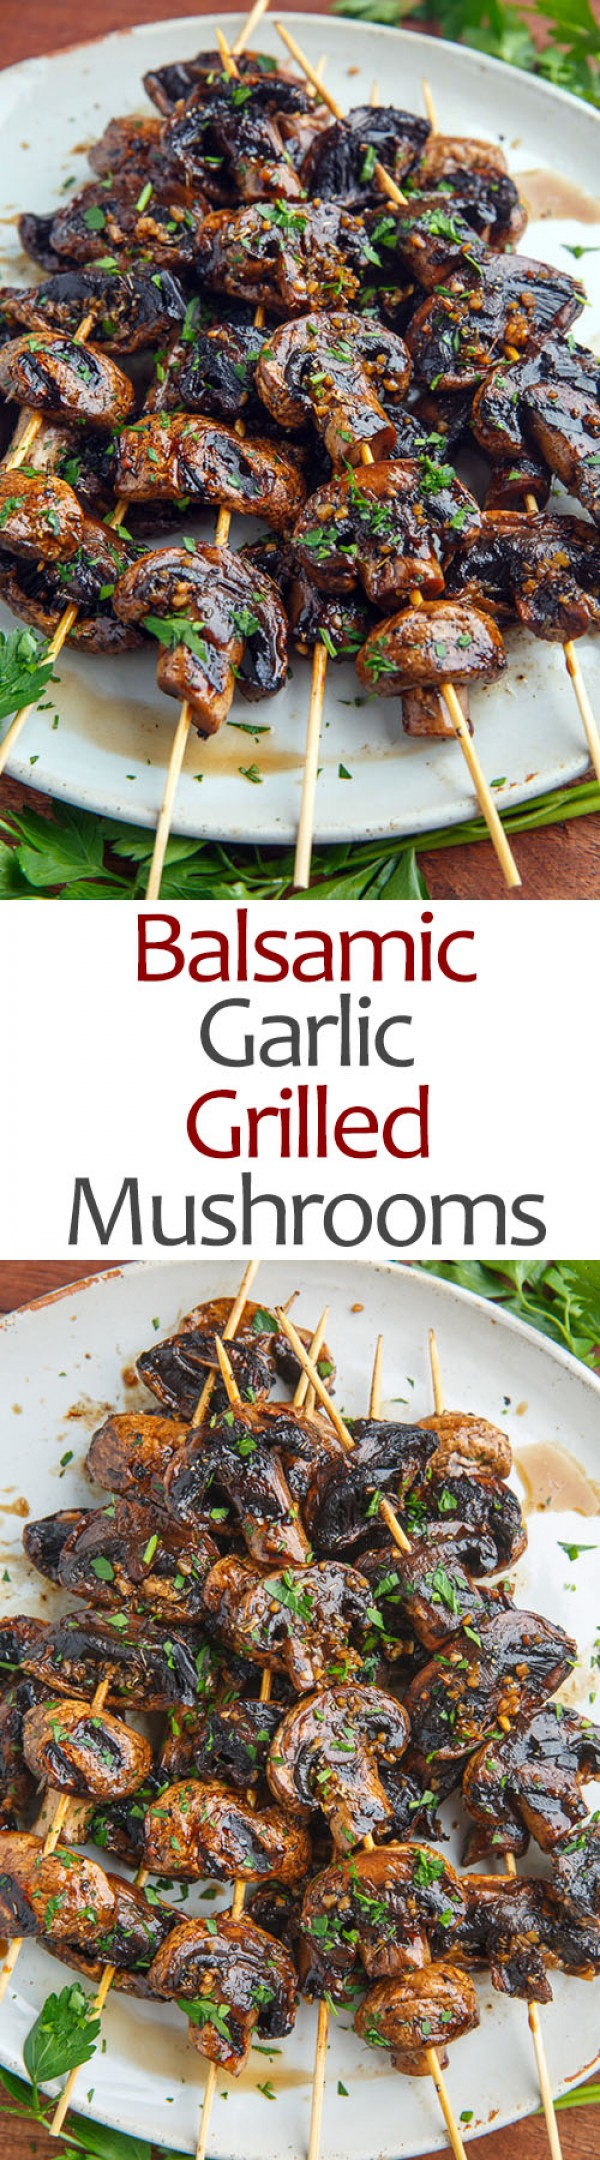 Get the #recipe Balsamic #Garlic Grilled #Mushrooms @recipes_to_go